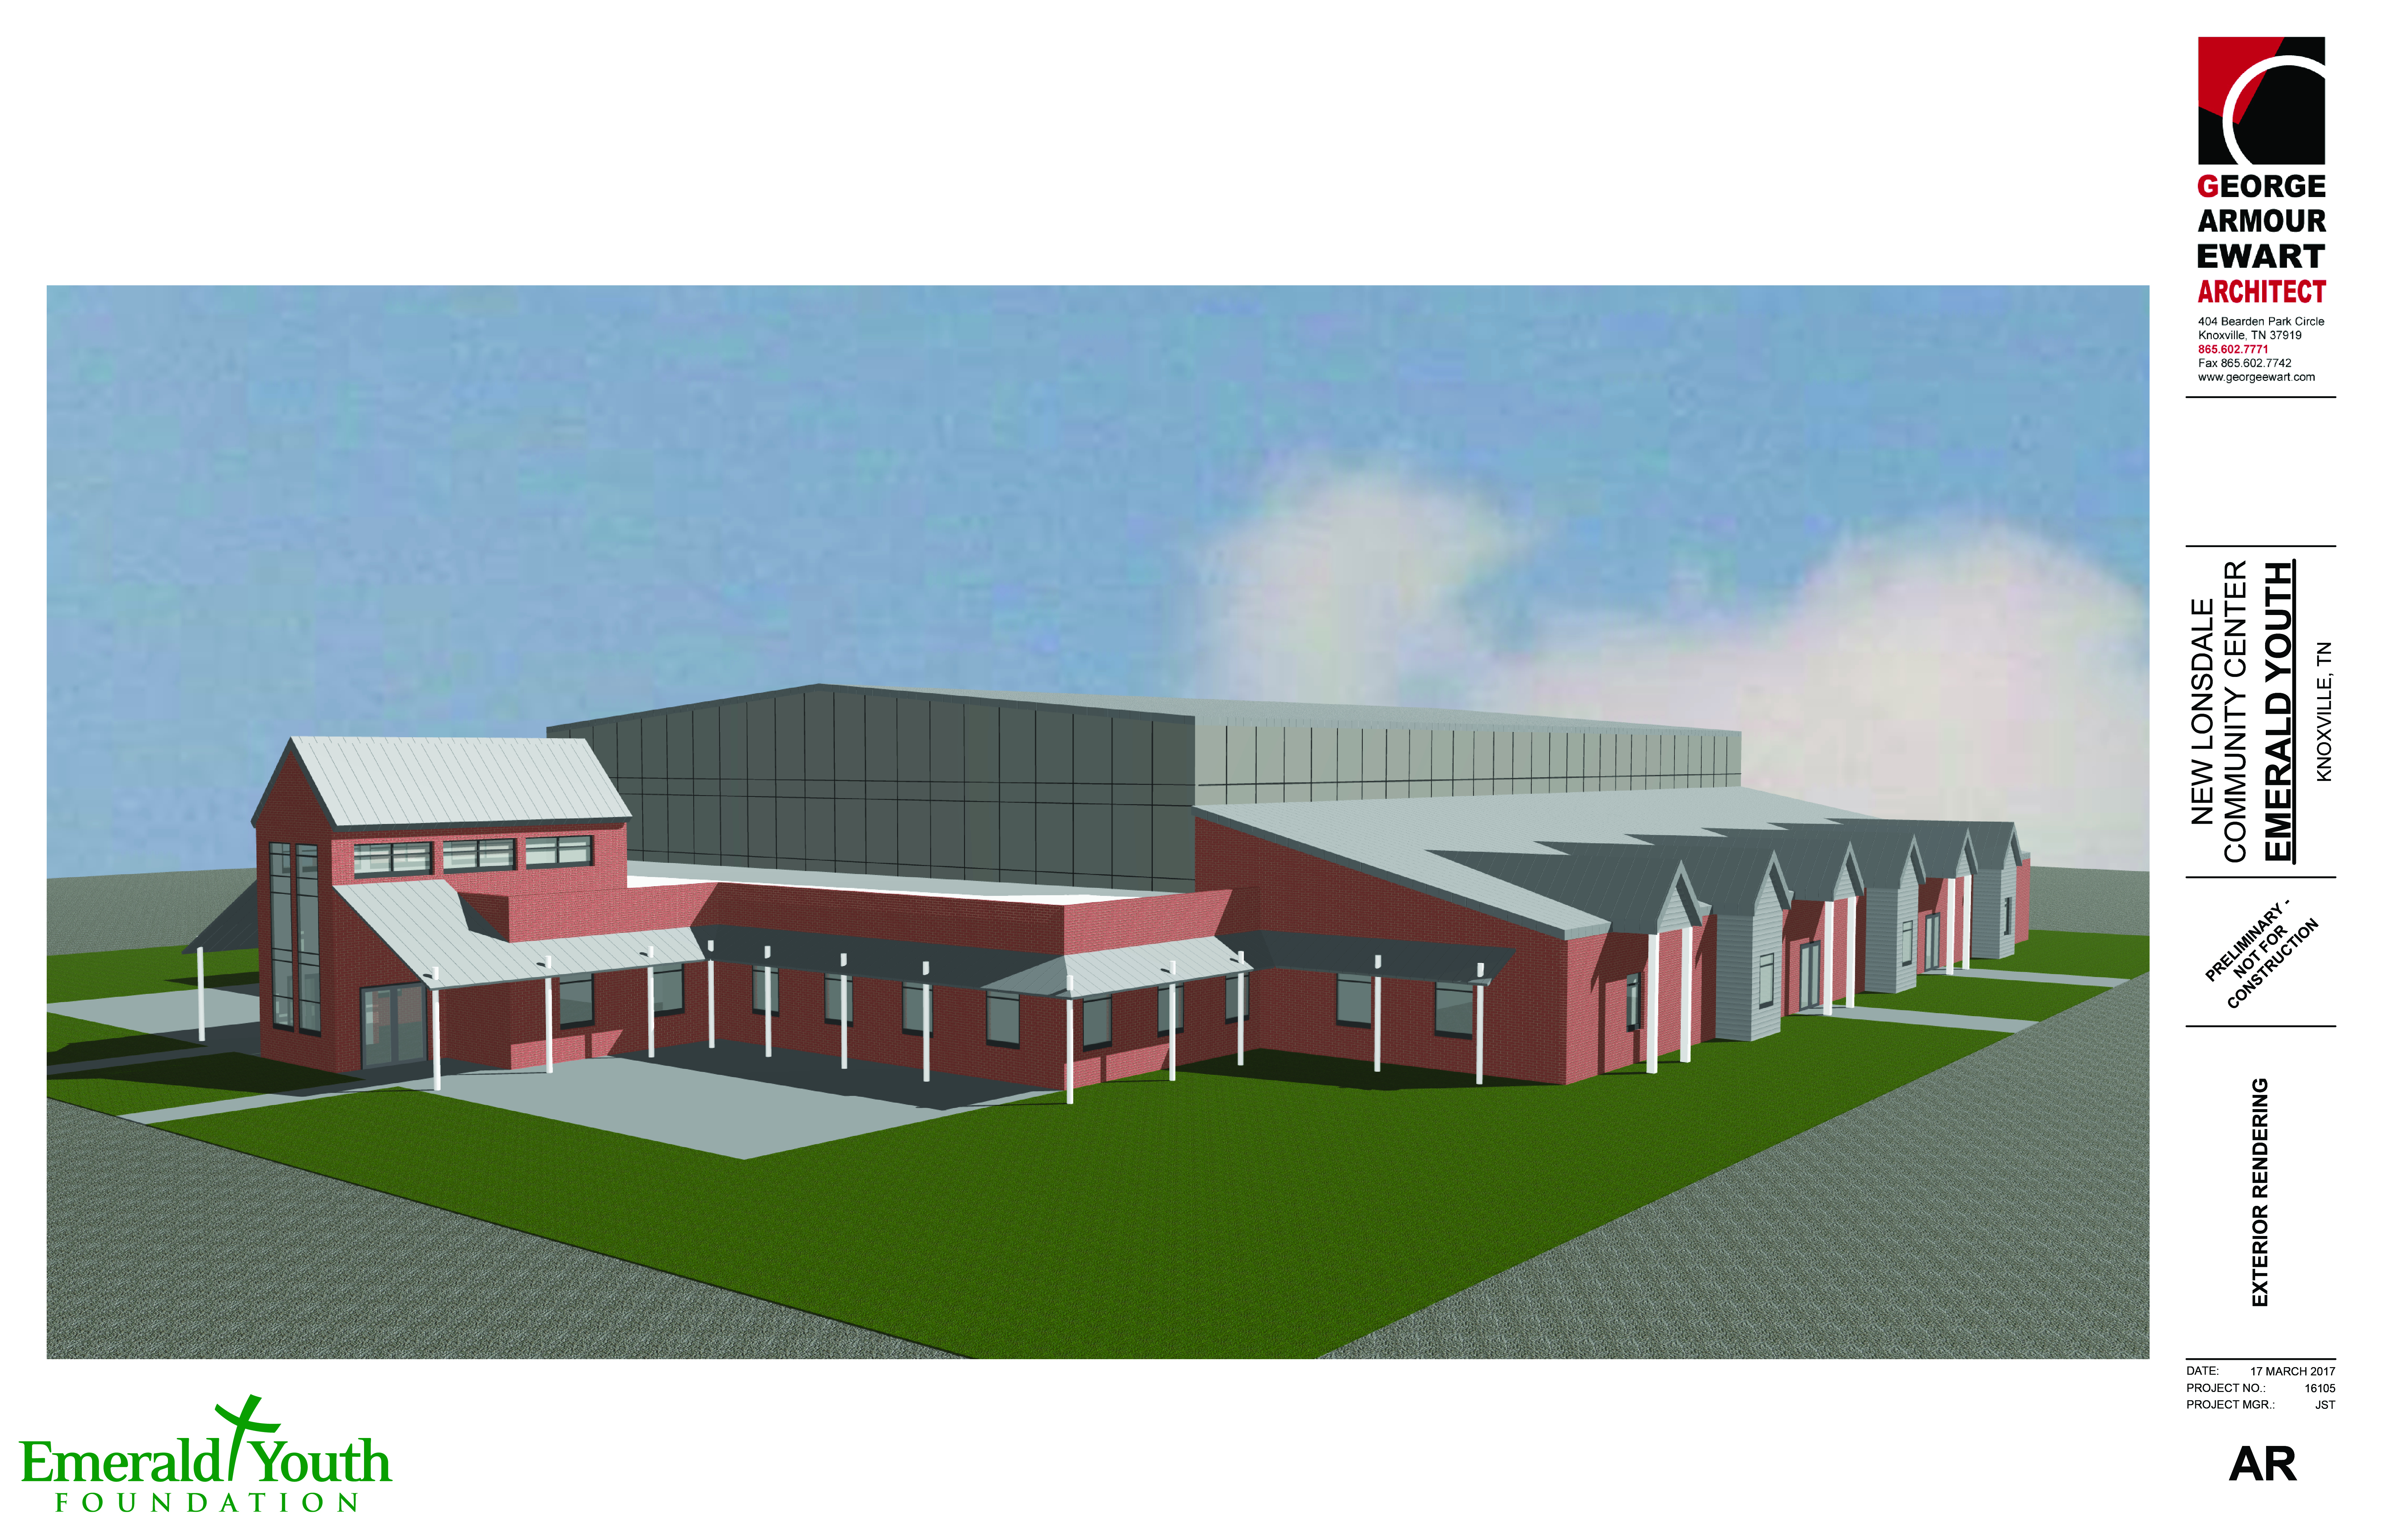 Building 92 microsoft store - Rendering Courtesy Emerald Youth Foundation